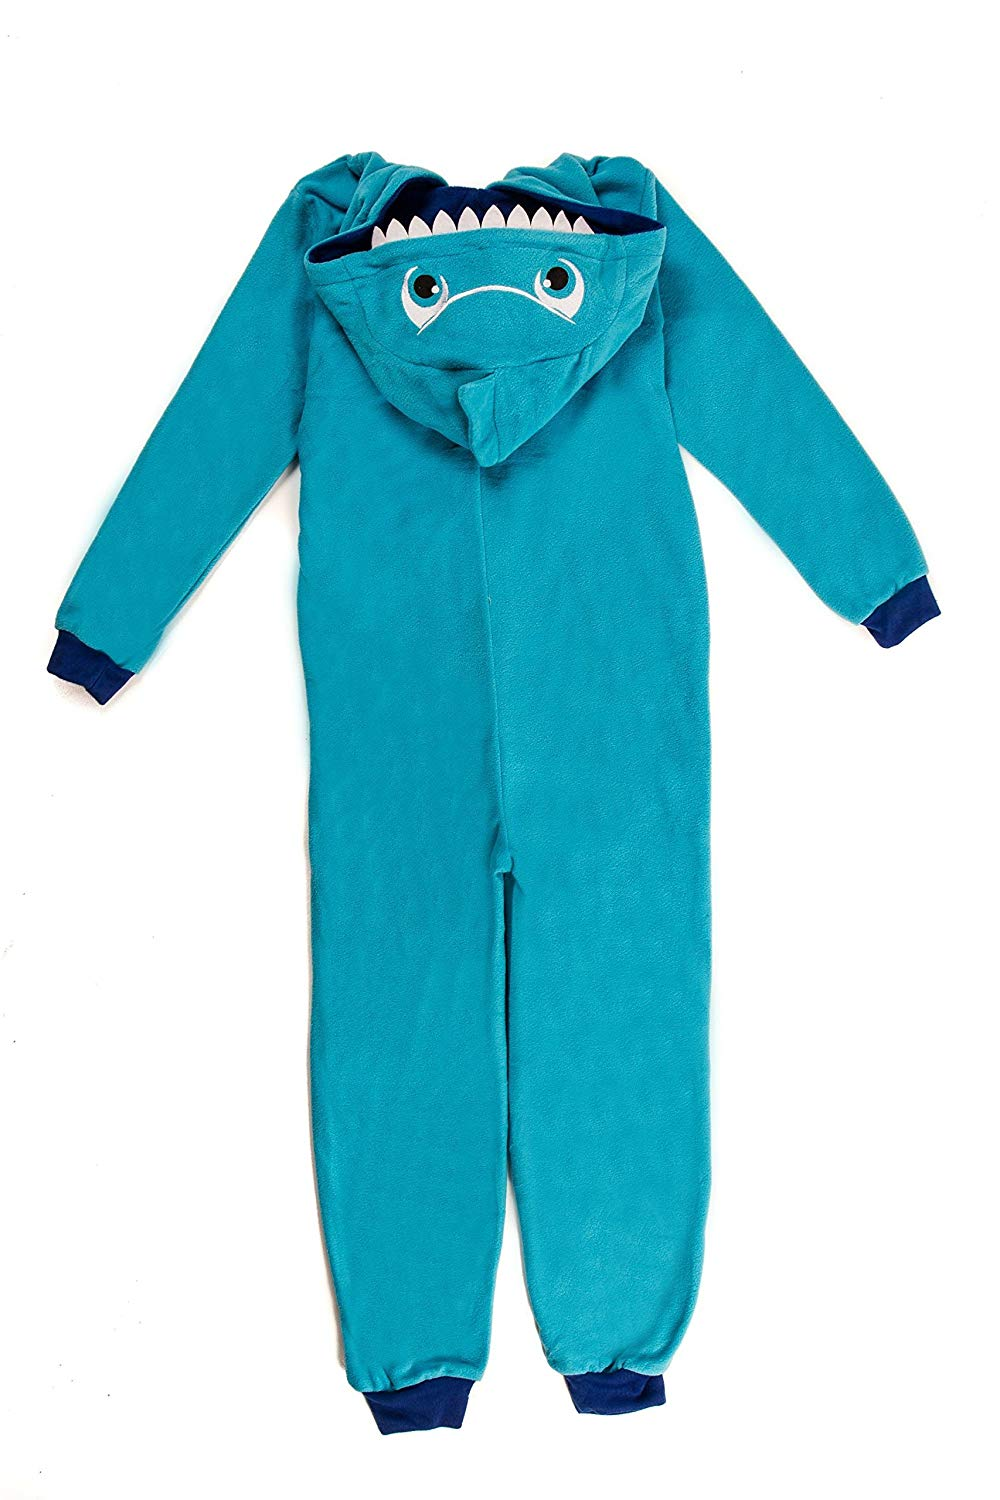 Dots & Dreams Kids Blue Shark Kigurimi Animal Hooded Onesie